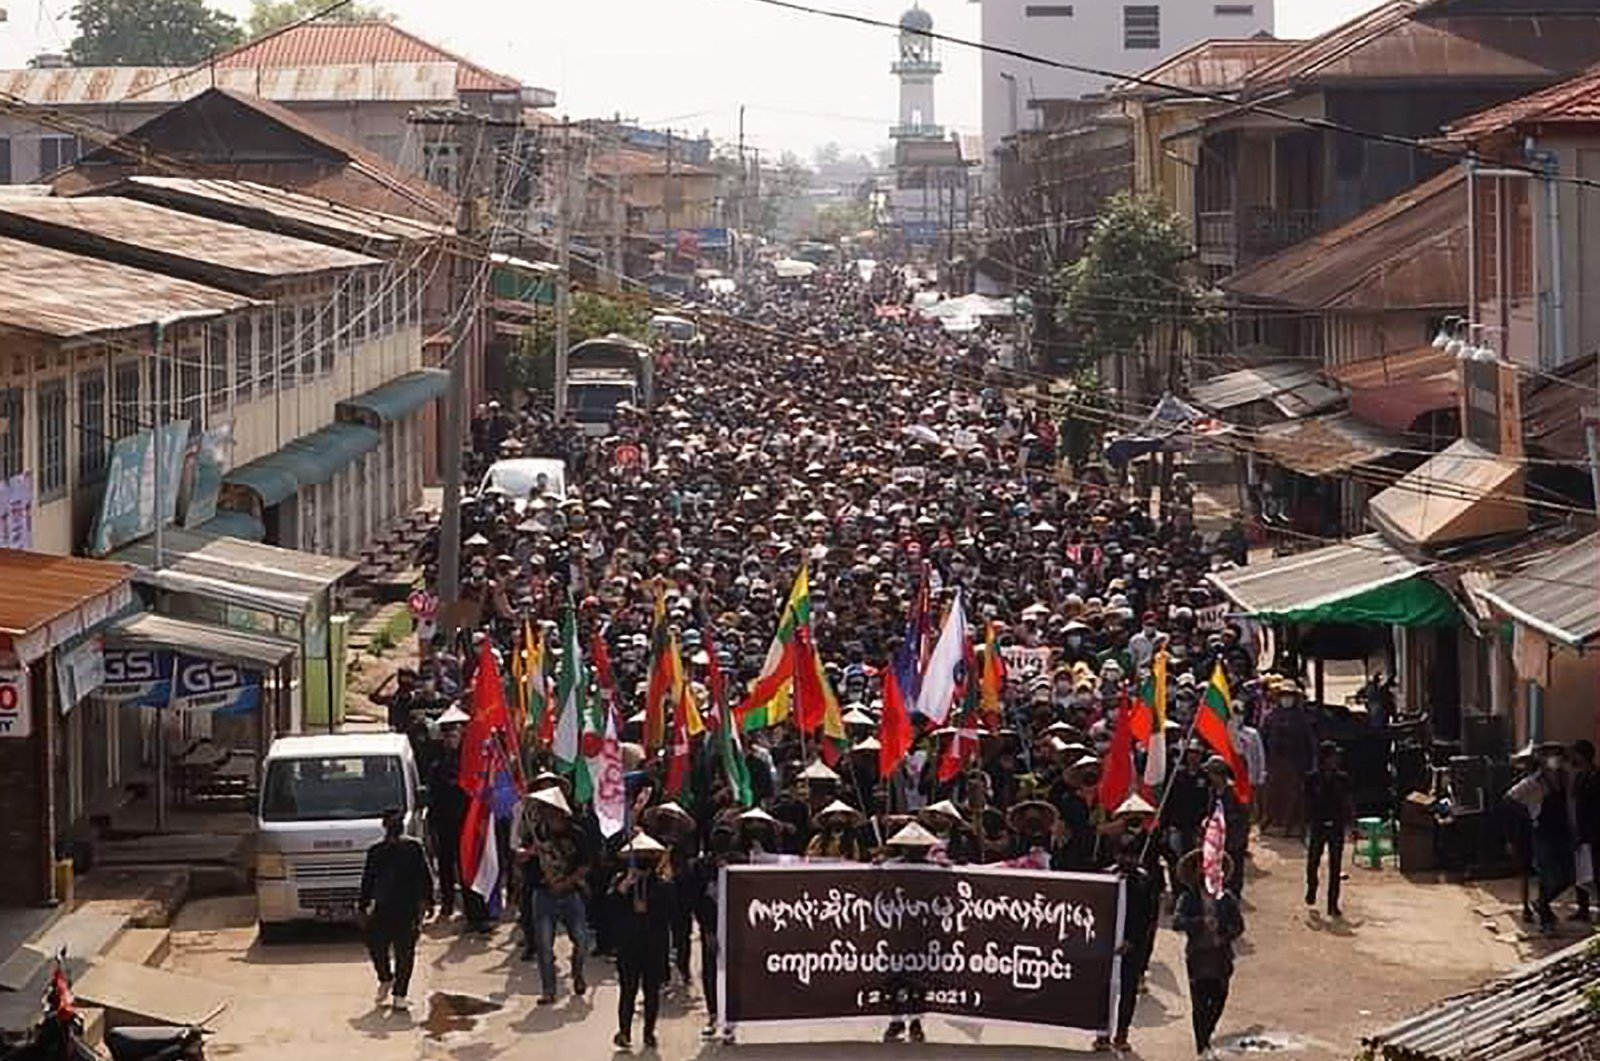 """Protesters take part in a demonstration against the military coup on """"Global Myanmar Spring Revolution Day"""" in Kyaukme, Shan State, Myanmar, May 2, 2021. (AFP Photo/Shwe Phee Myay News Agency)"""